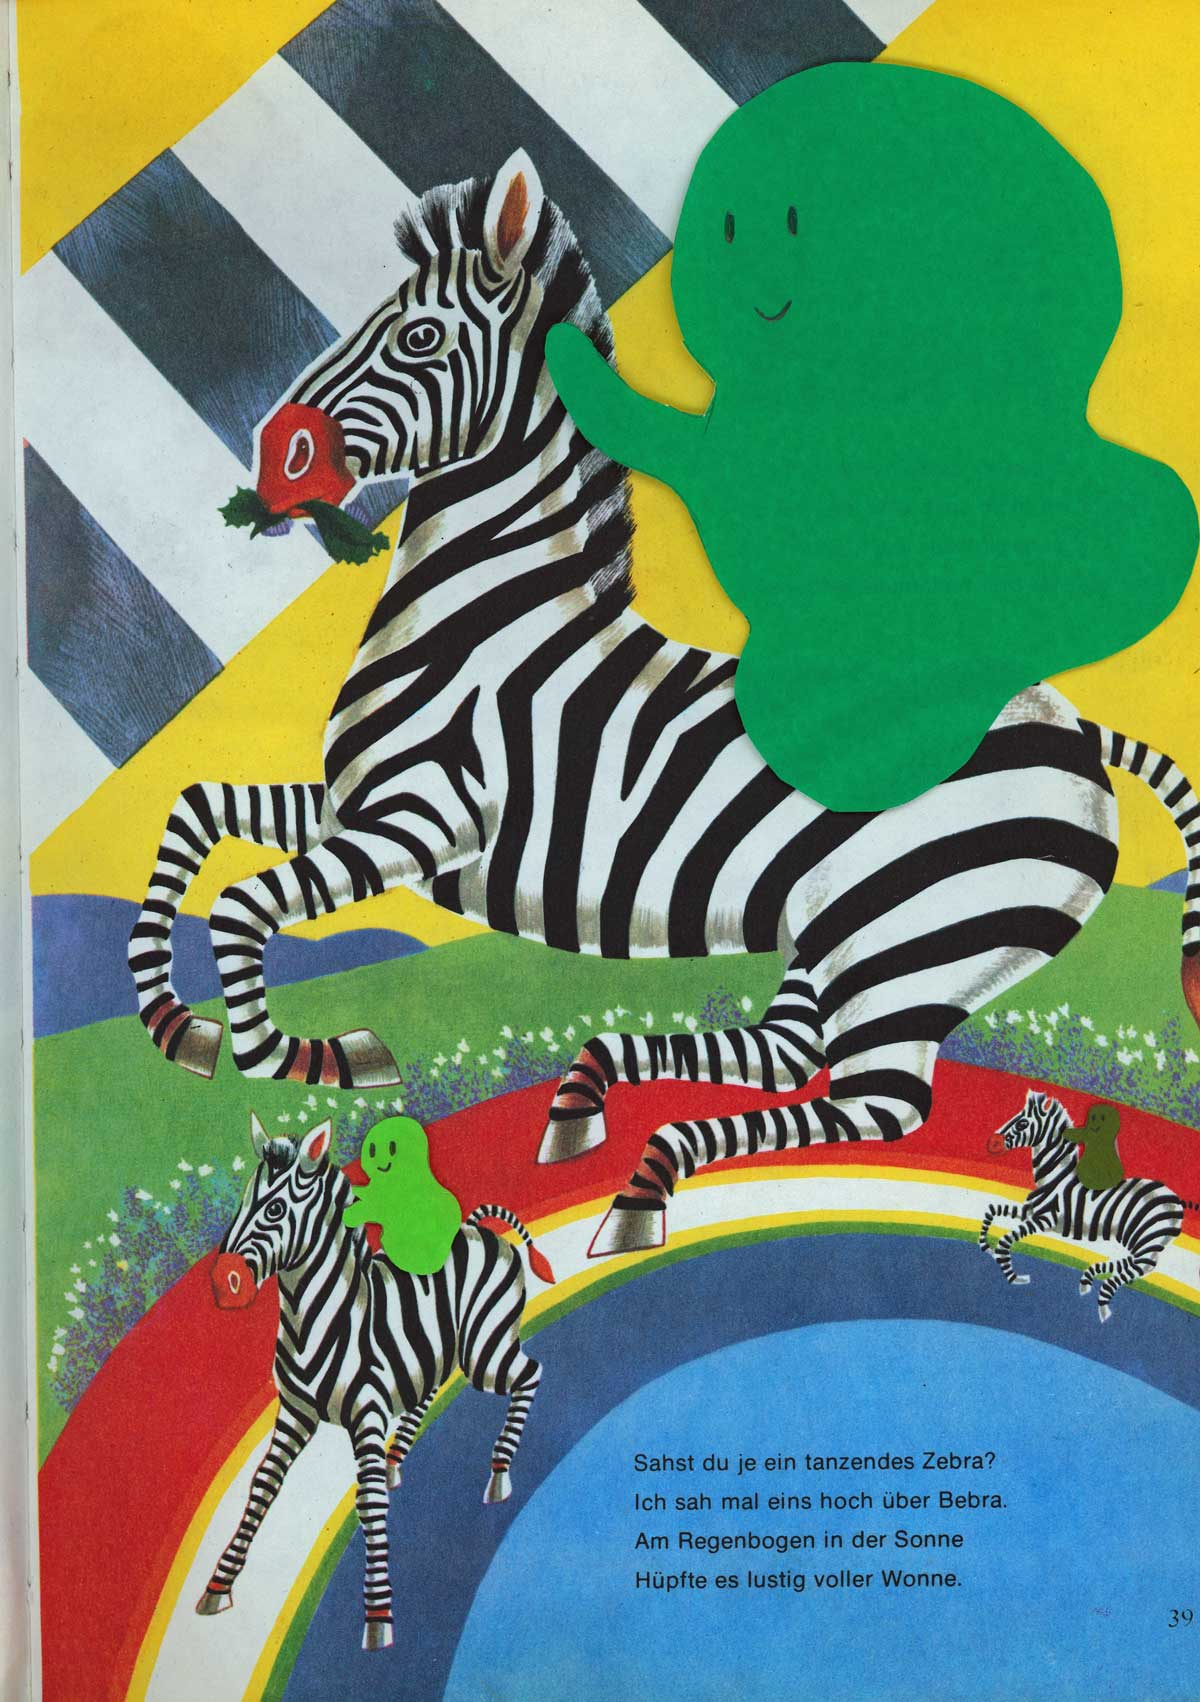 Be Creative #201 - Some ghosts are good at riding zebras, © Ines Häufler, 2011